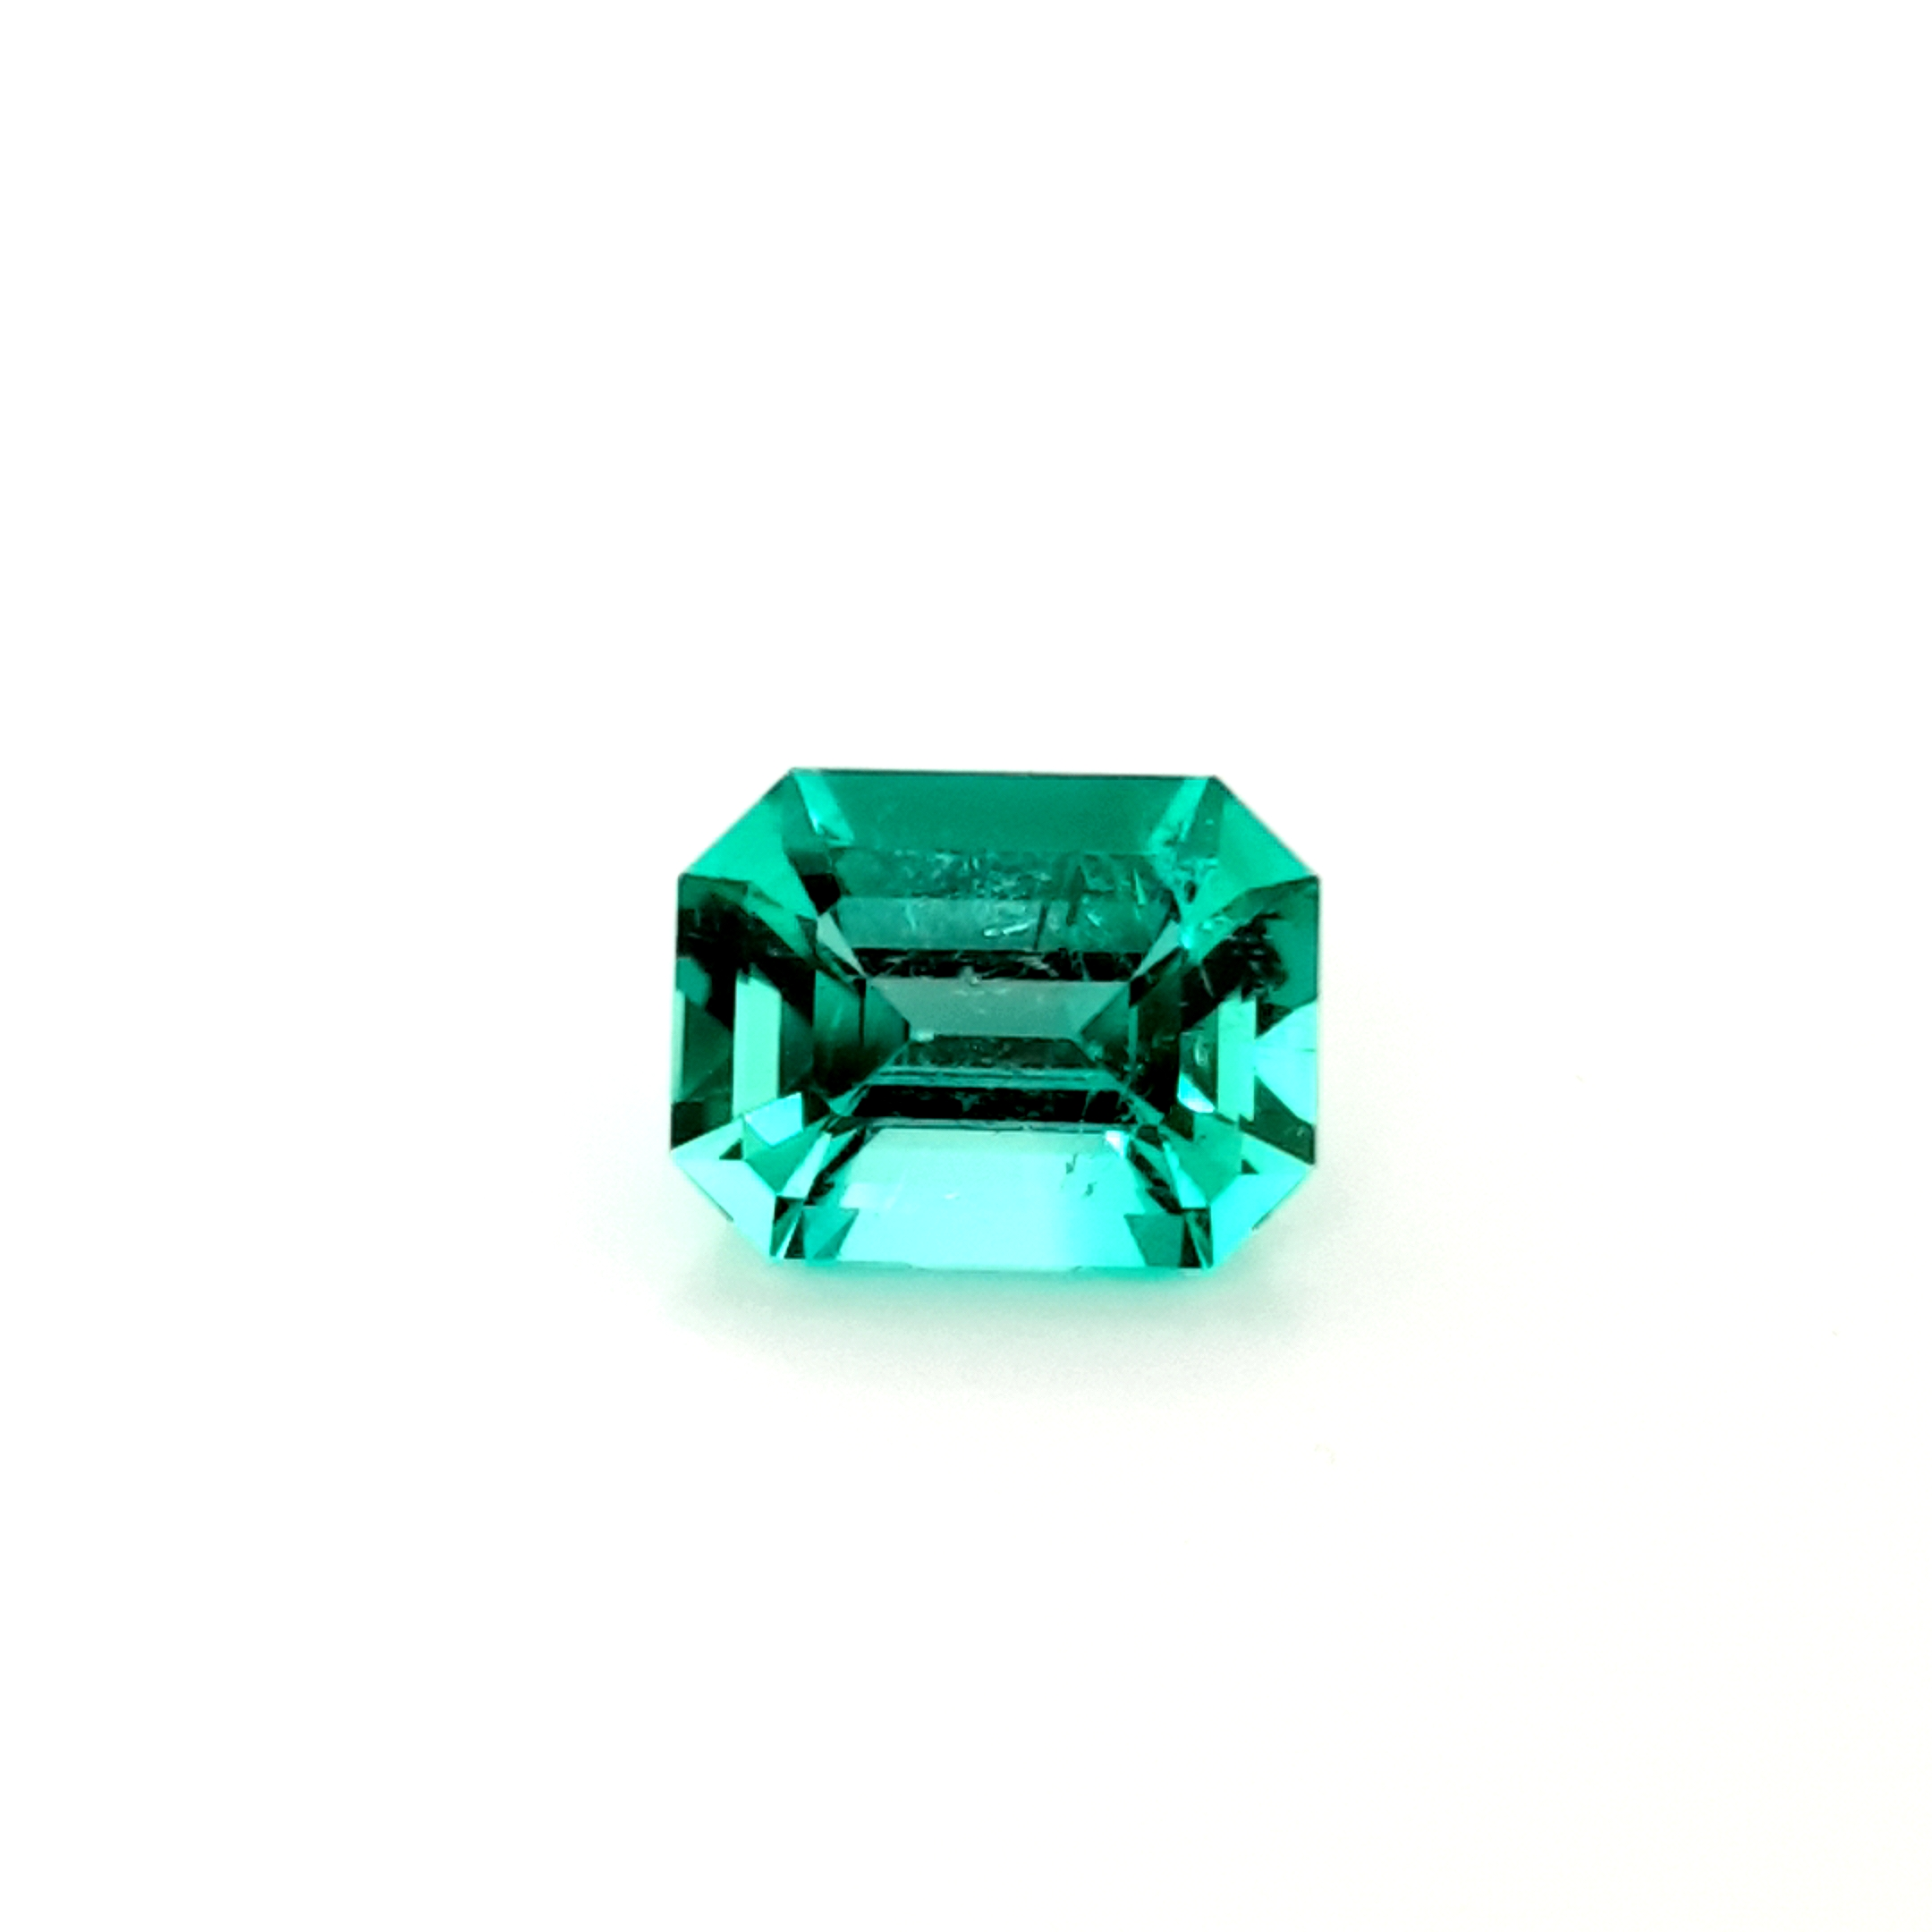 3,27ct. Emerald from Colombia cert. insig. EMB21C6 ClaudiaHamann__2021-03-26-12-12-13